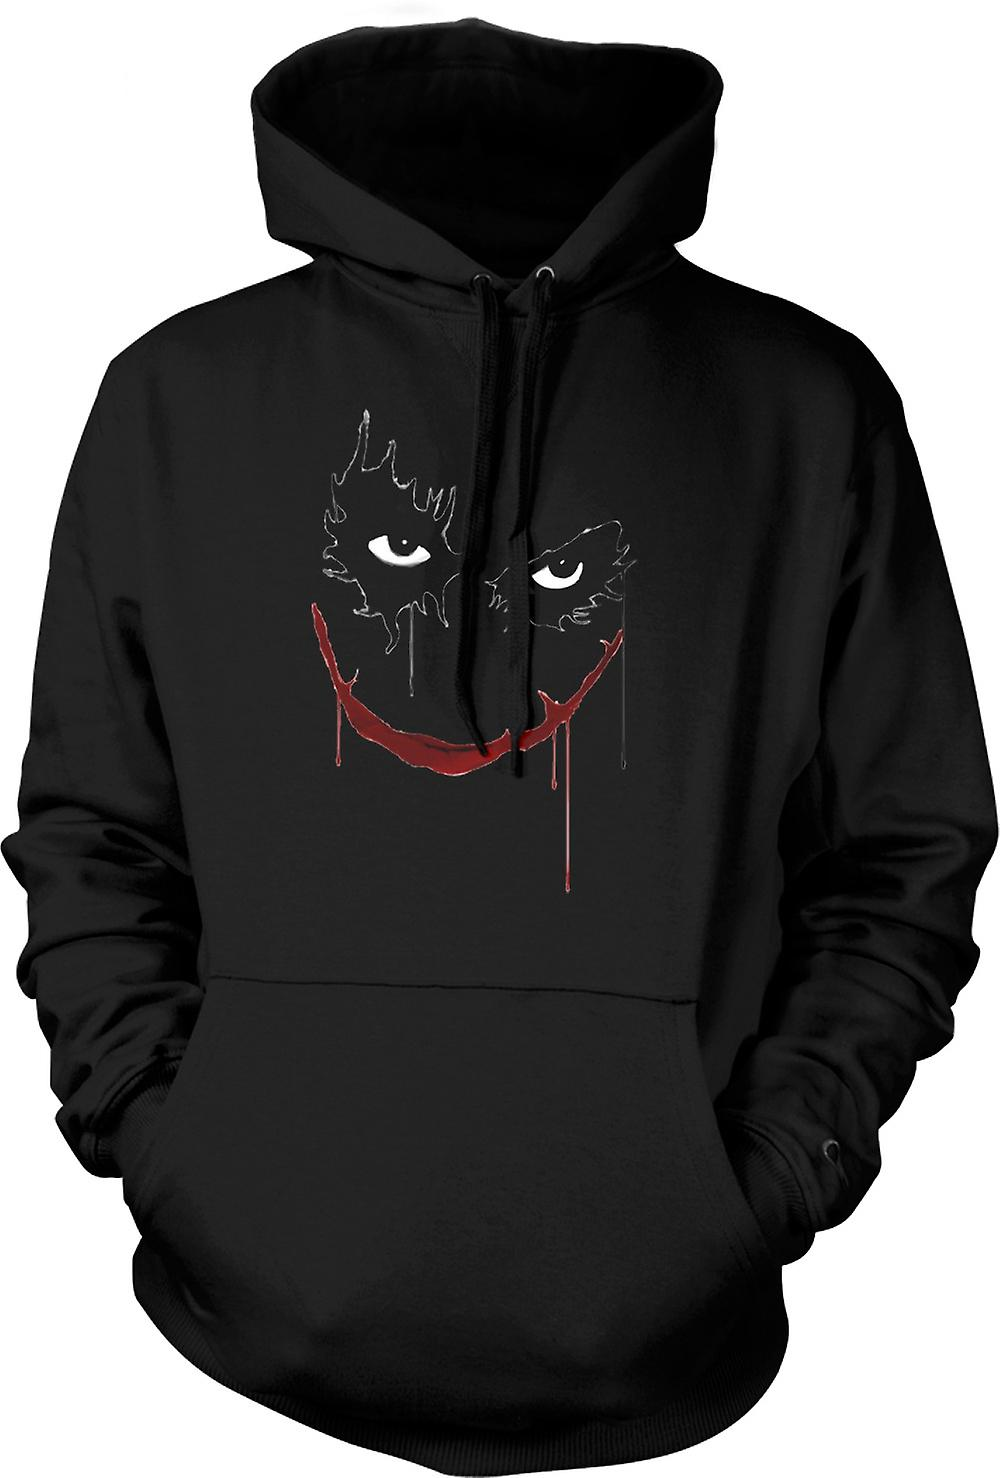 Enfant Sweat Capuche - Joker Sourire - Batman - Pop Art